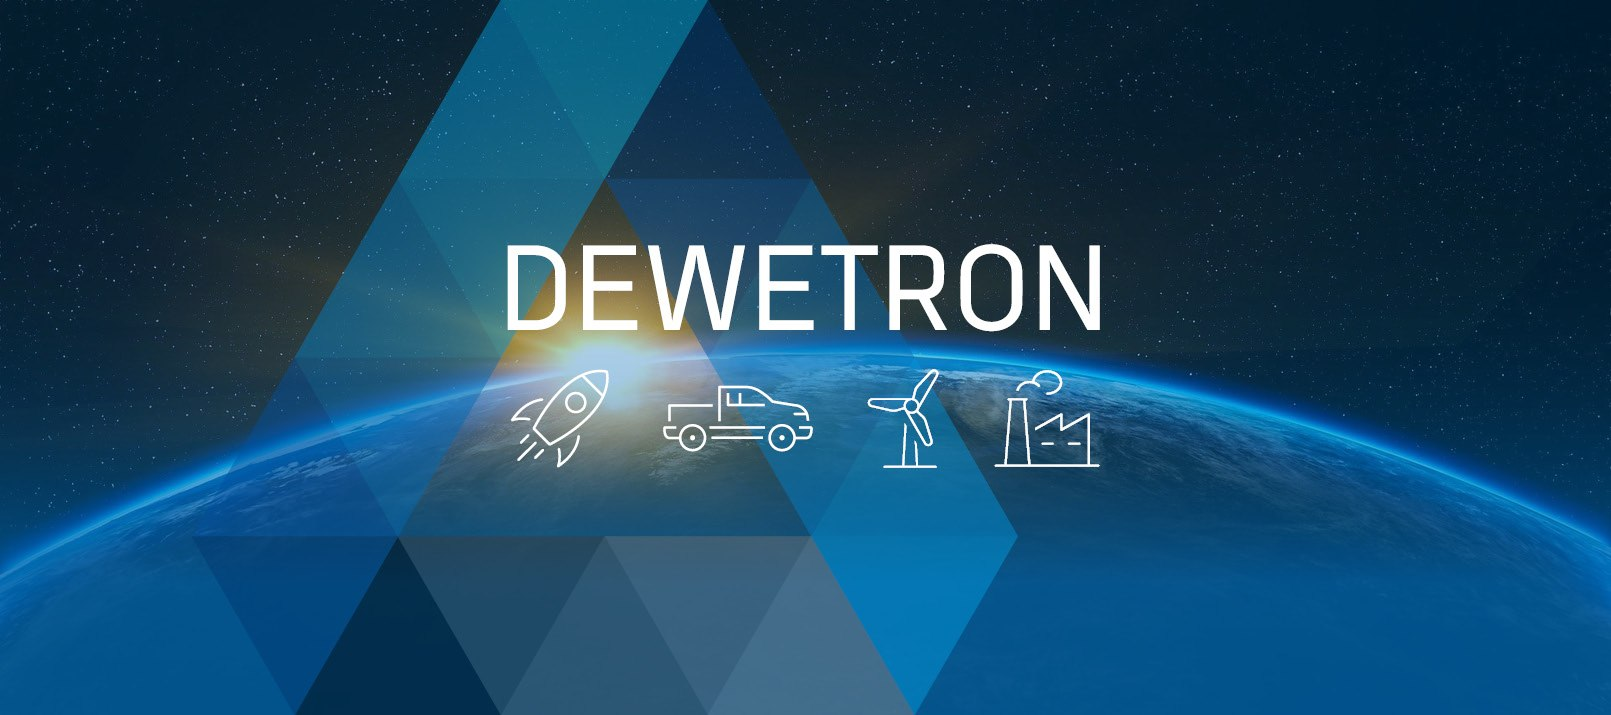 DEWETRON Application Examples - The World of DEWETRON